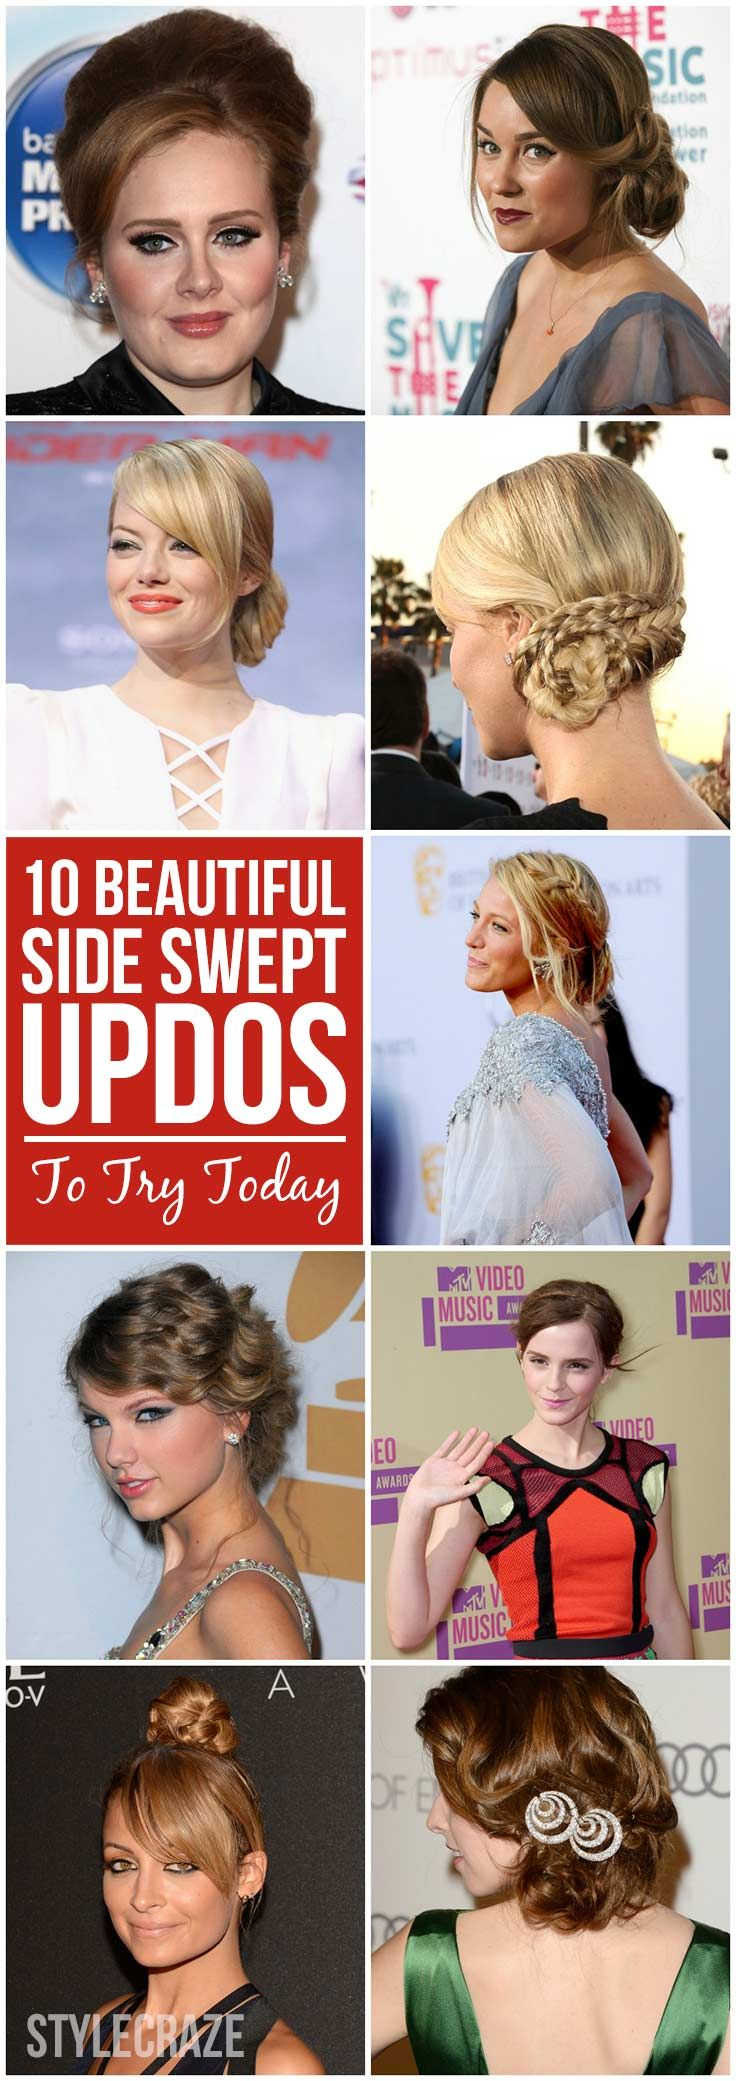 69 best celebrity hairstyles images on pinterest | celebrity